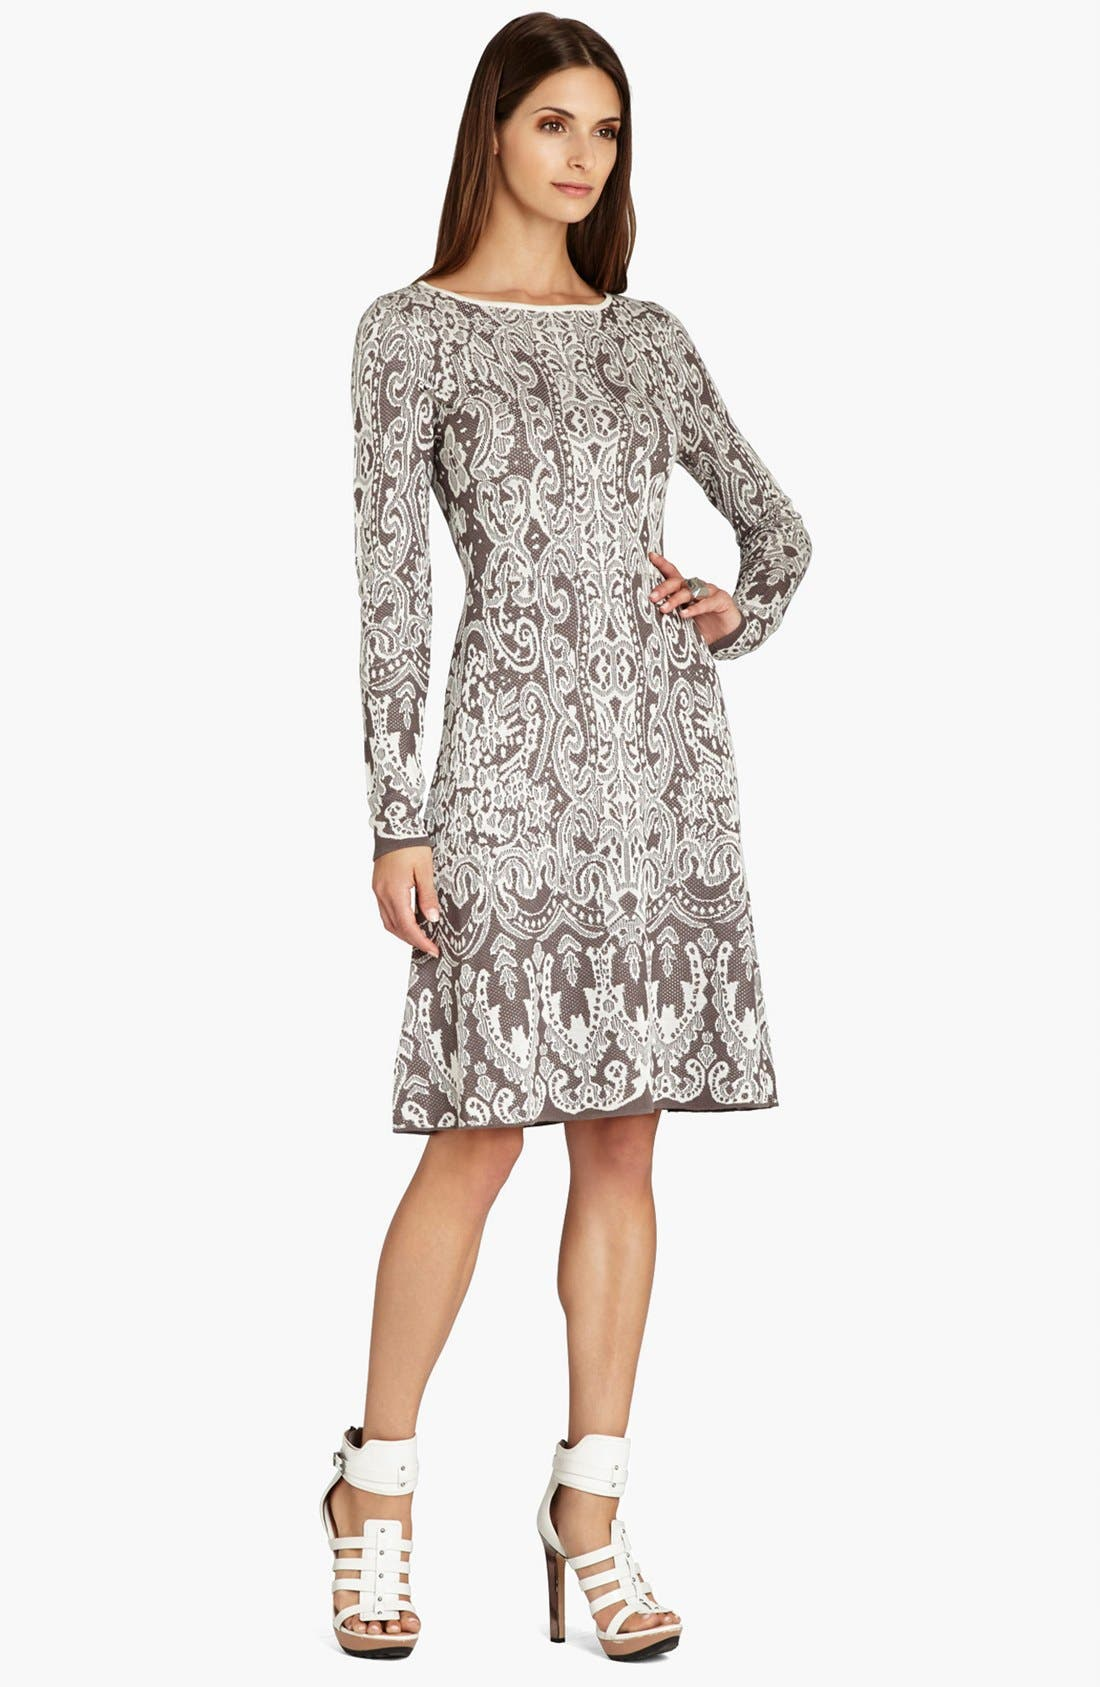 Alternate Image 1 Selected - BCBGMAXAZRIA Intarsia Jacquard Sweater Dress